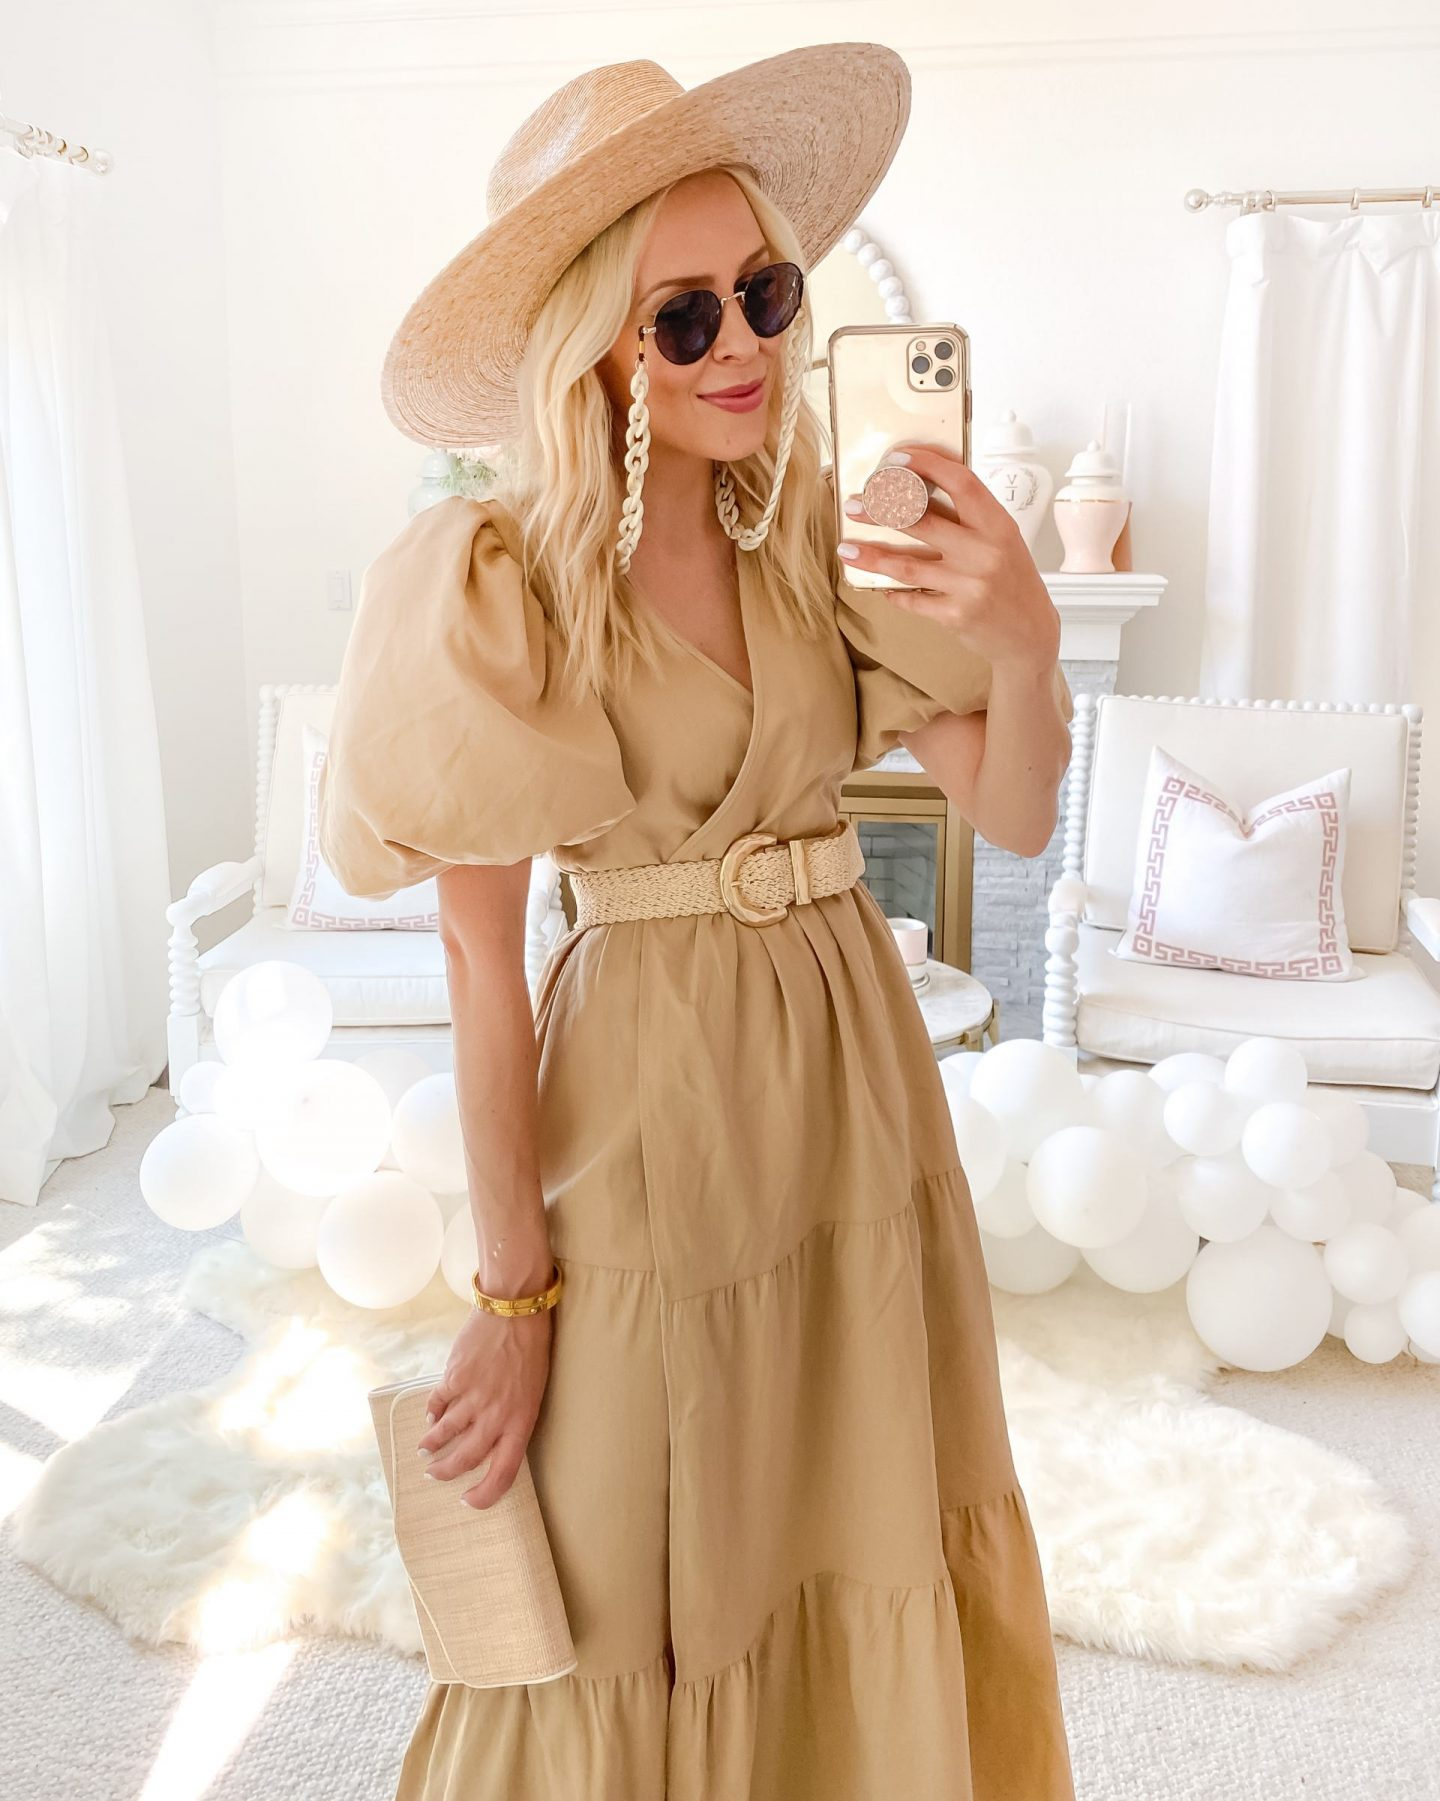 Summer style affordable puff sleeve dresses from Nasty Gal and Dillard's, featured by Lombard & Fifth Veronica Levy.